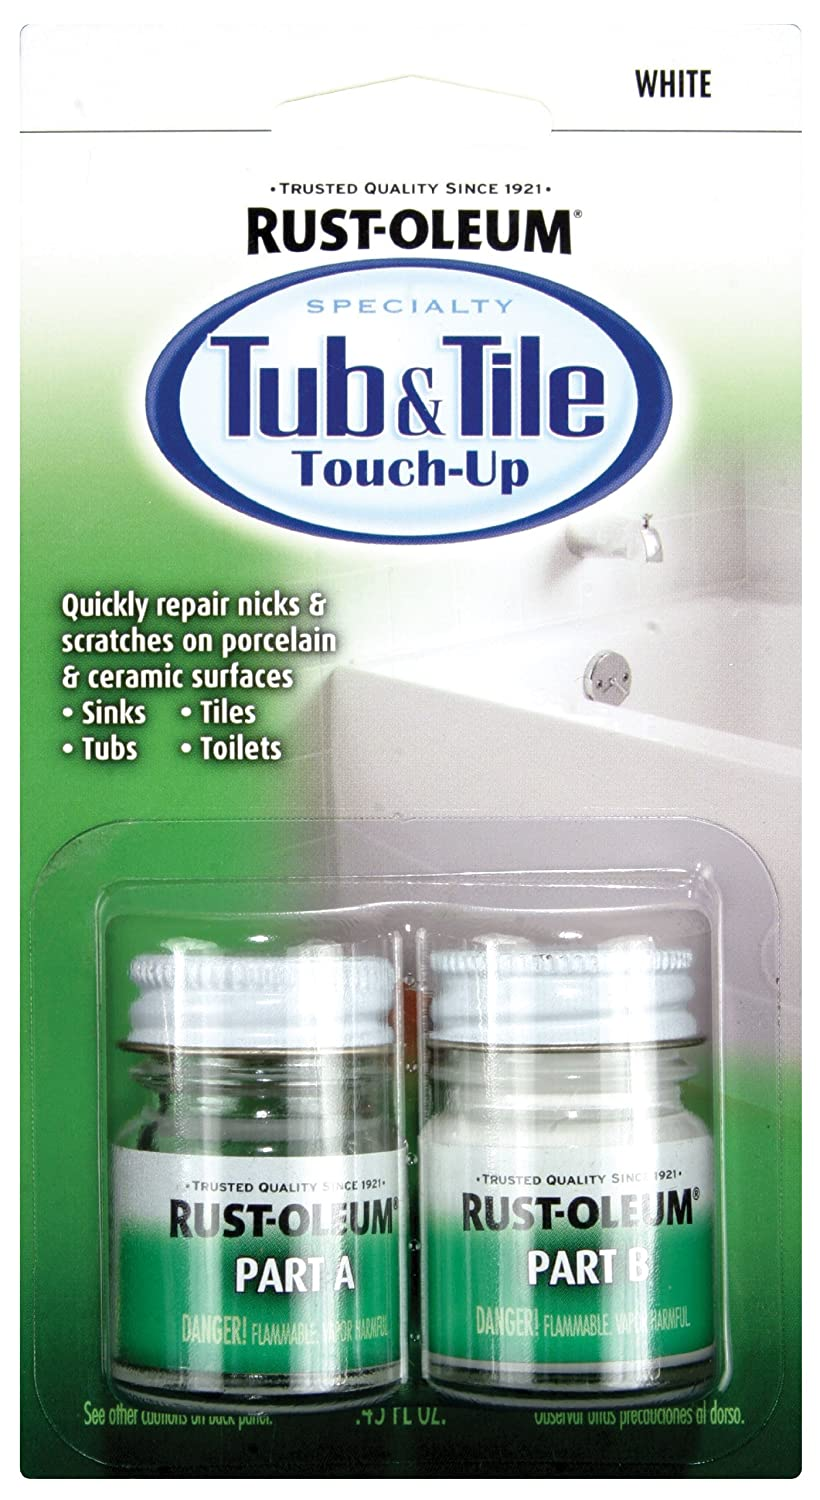 rust oleum 244166 specialty kit tub and tile touch up white ebay. Black Bedroom Furniture Sets. Home Design Ideas